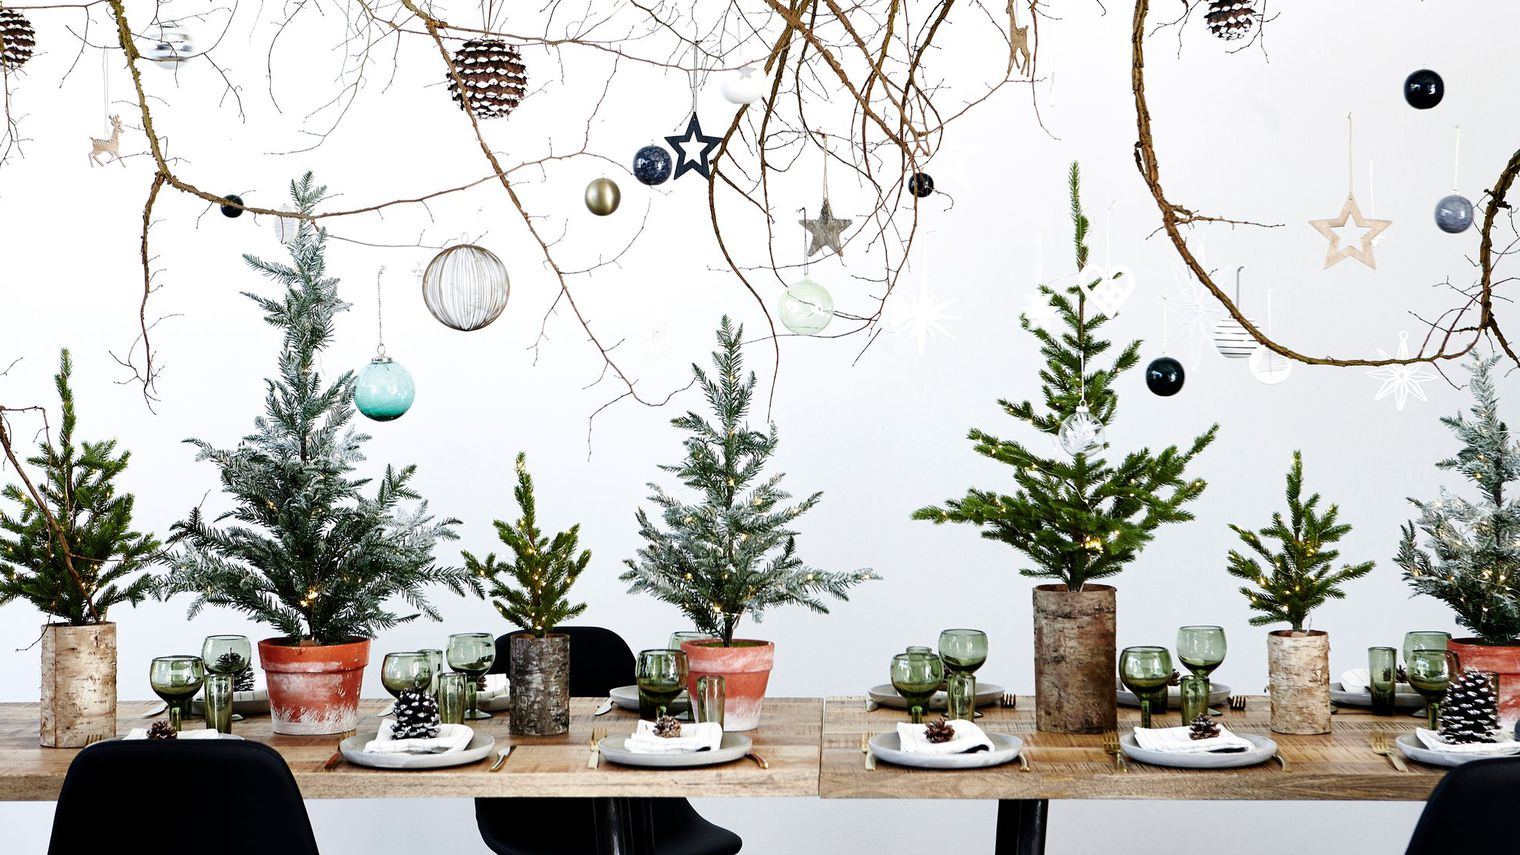 Pure color envy vivi b - Decoration de table de noel ...